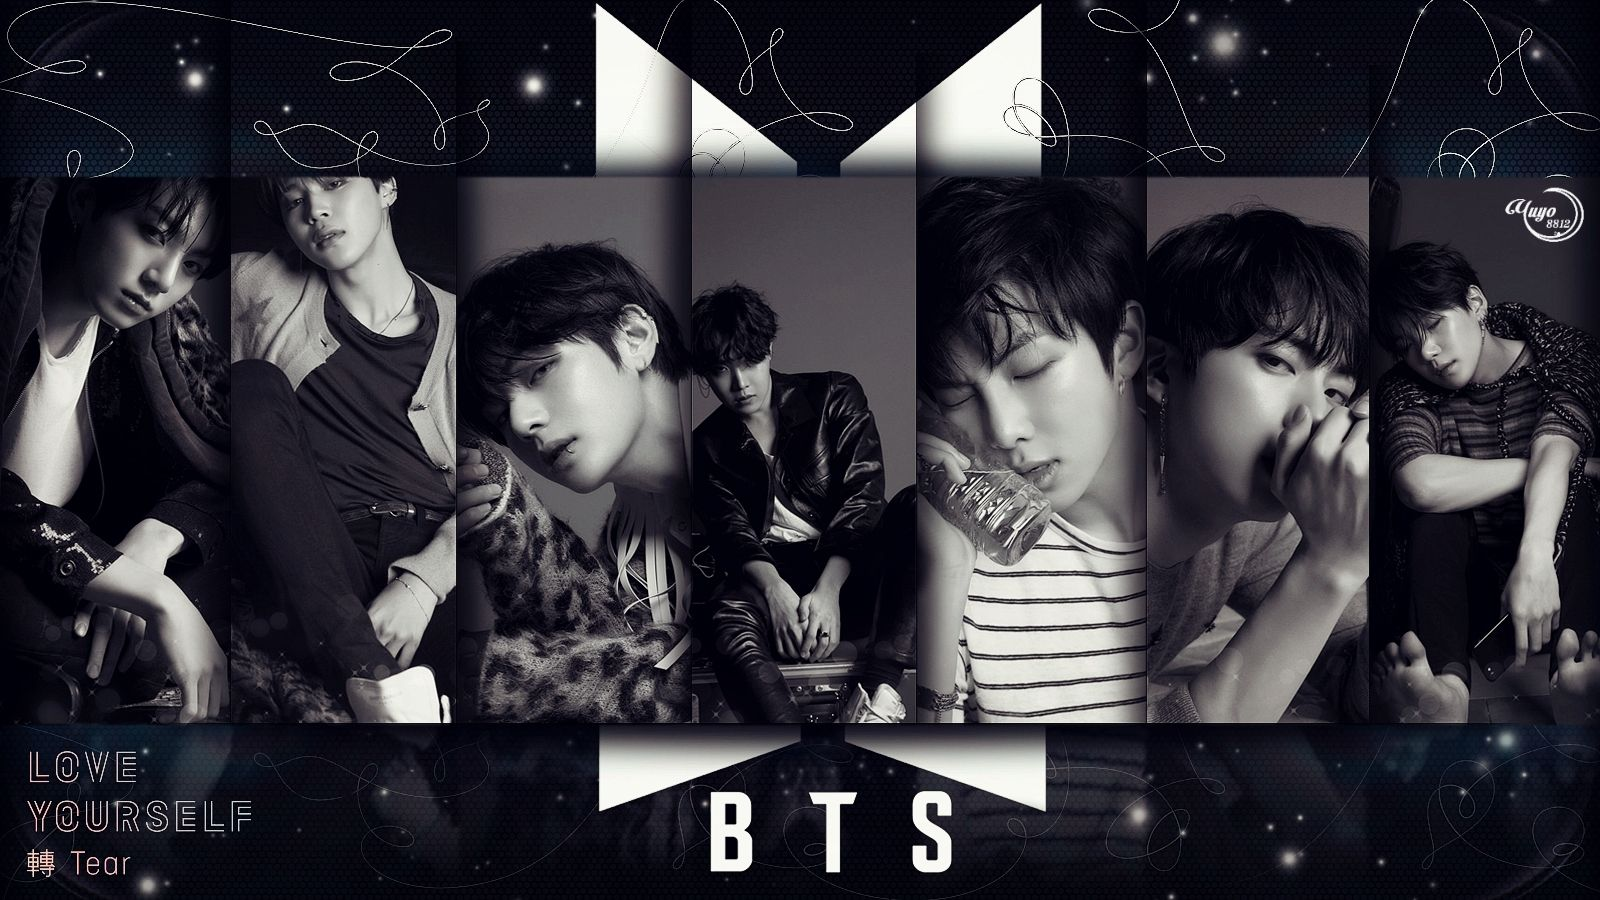 bts wallpaper desktop hd, bts wallpaper download